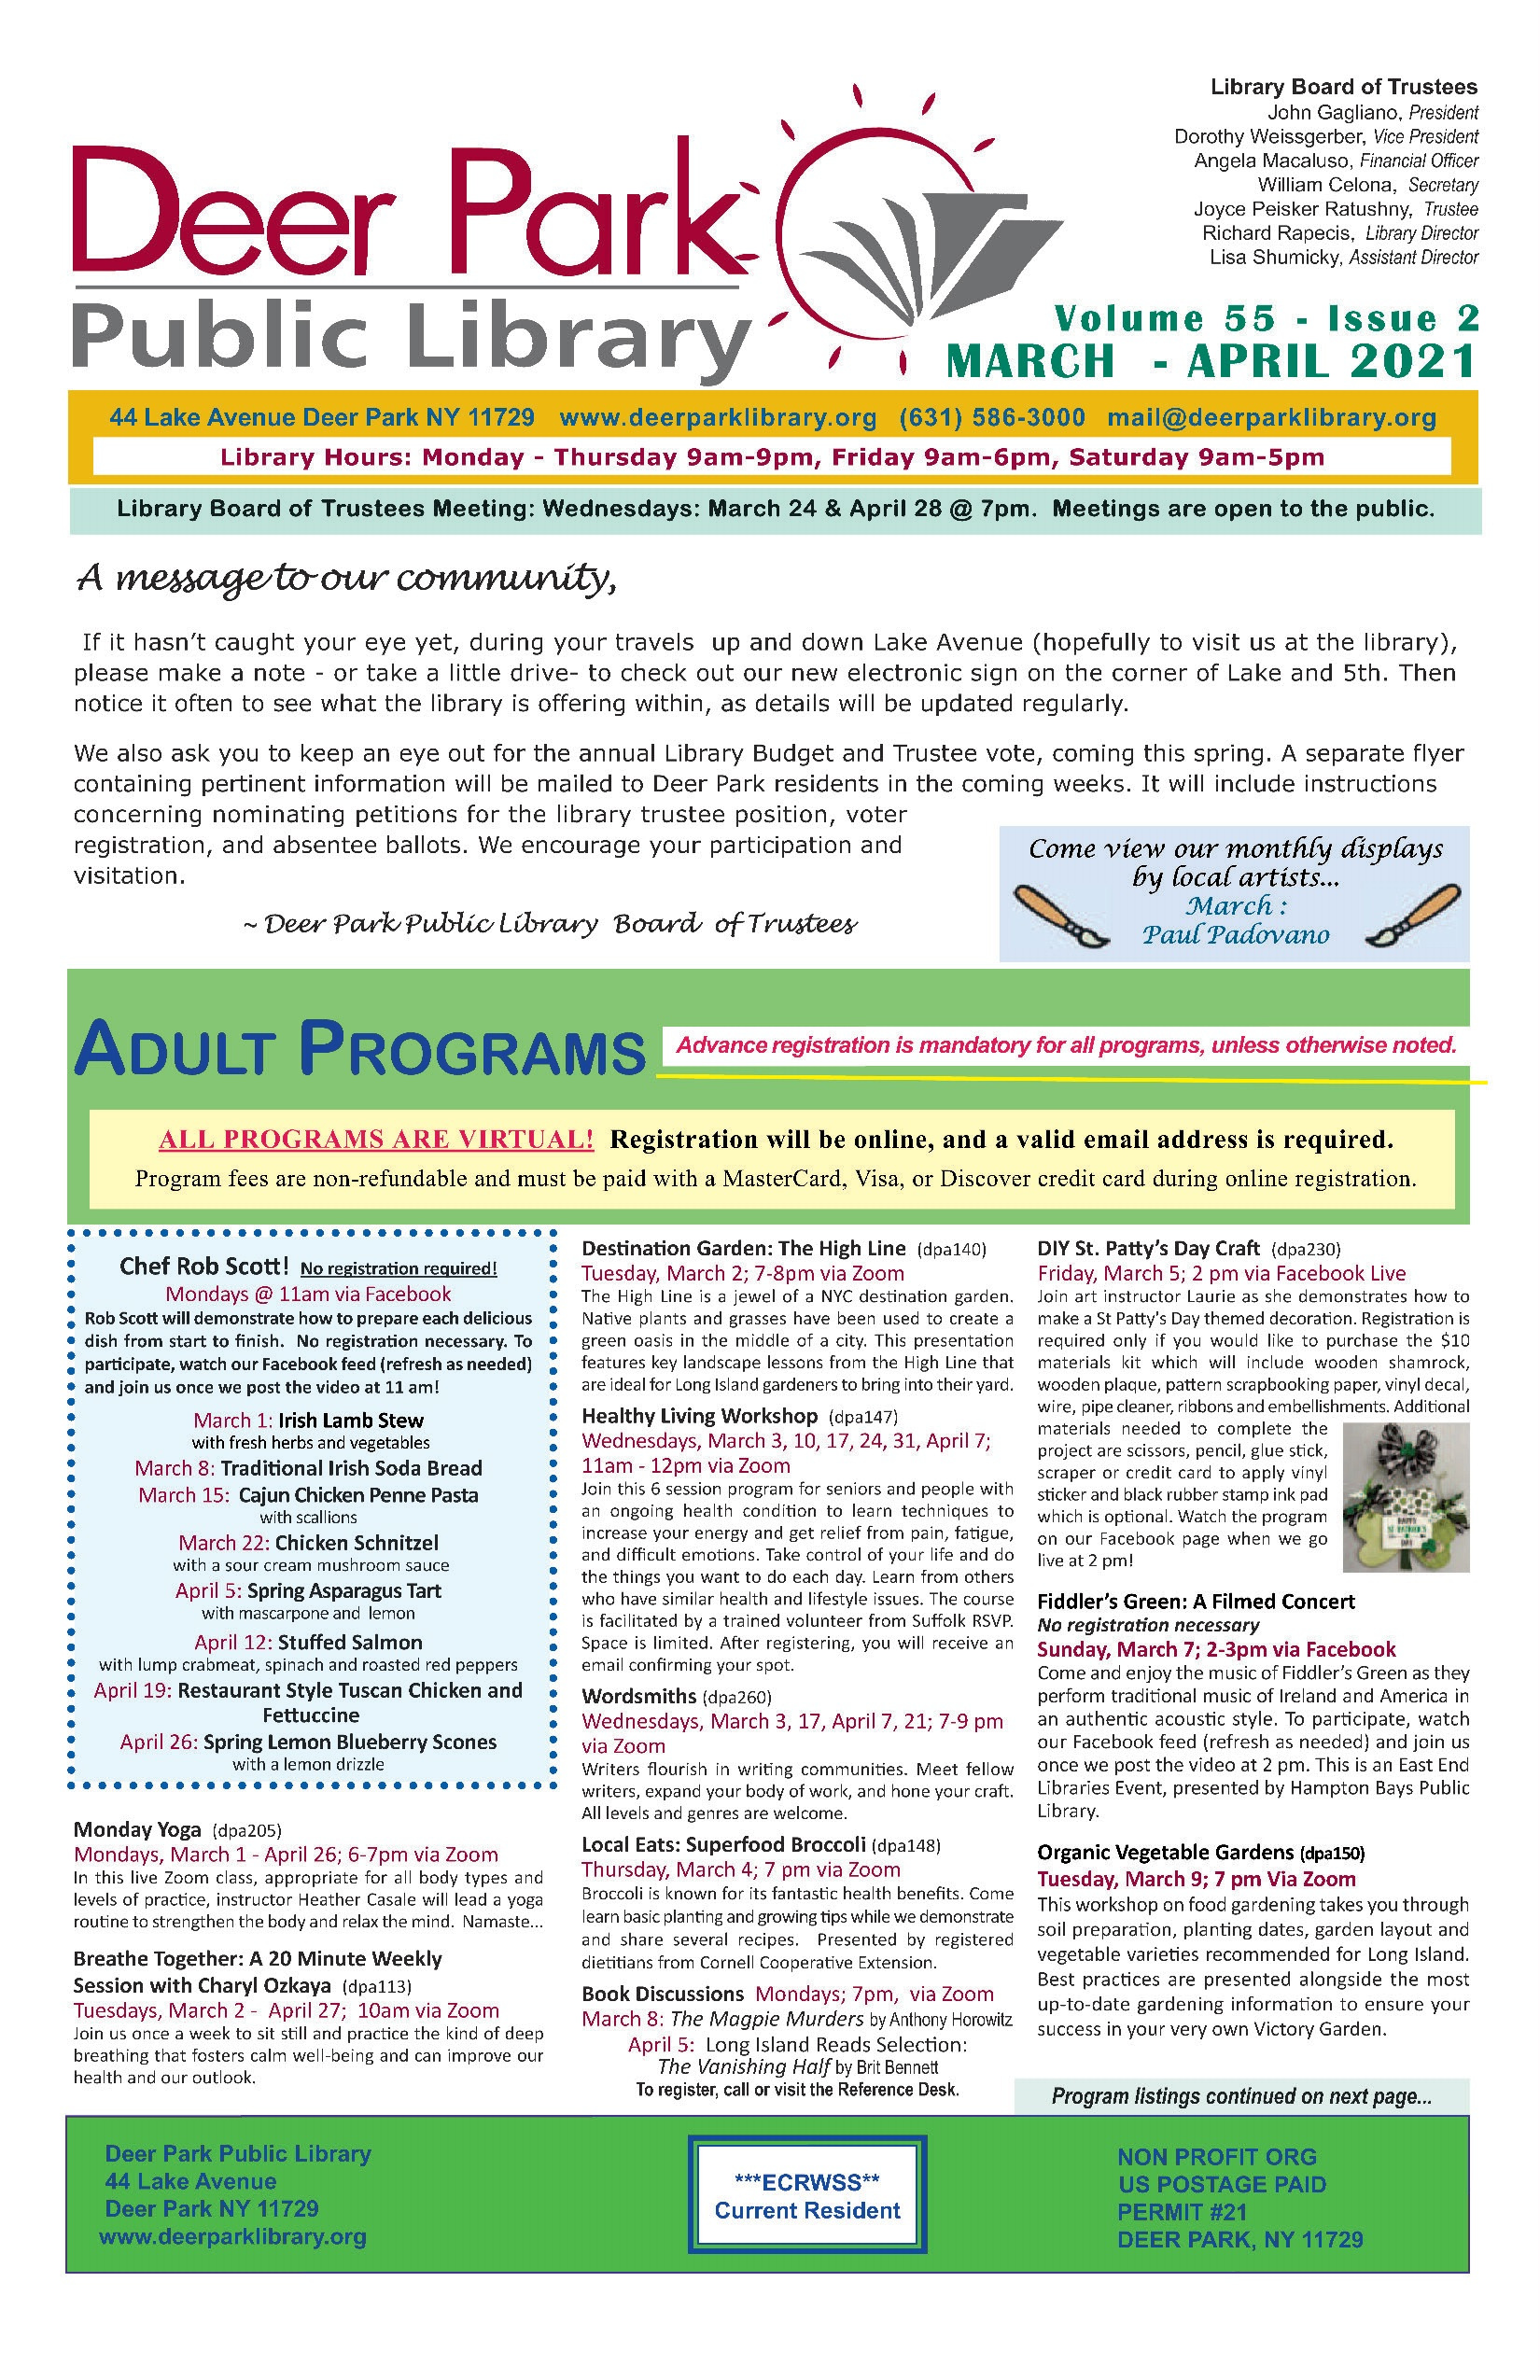 2021 March-April Newsletter 1st Page Image